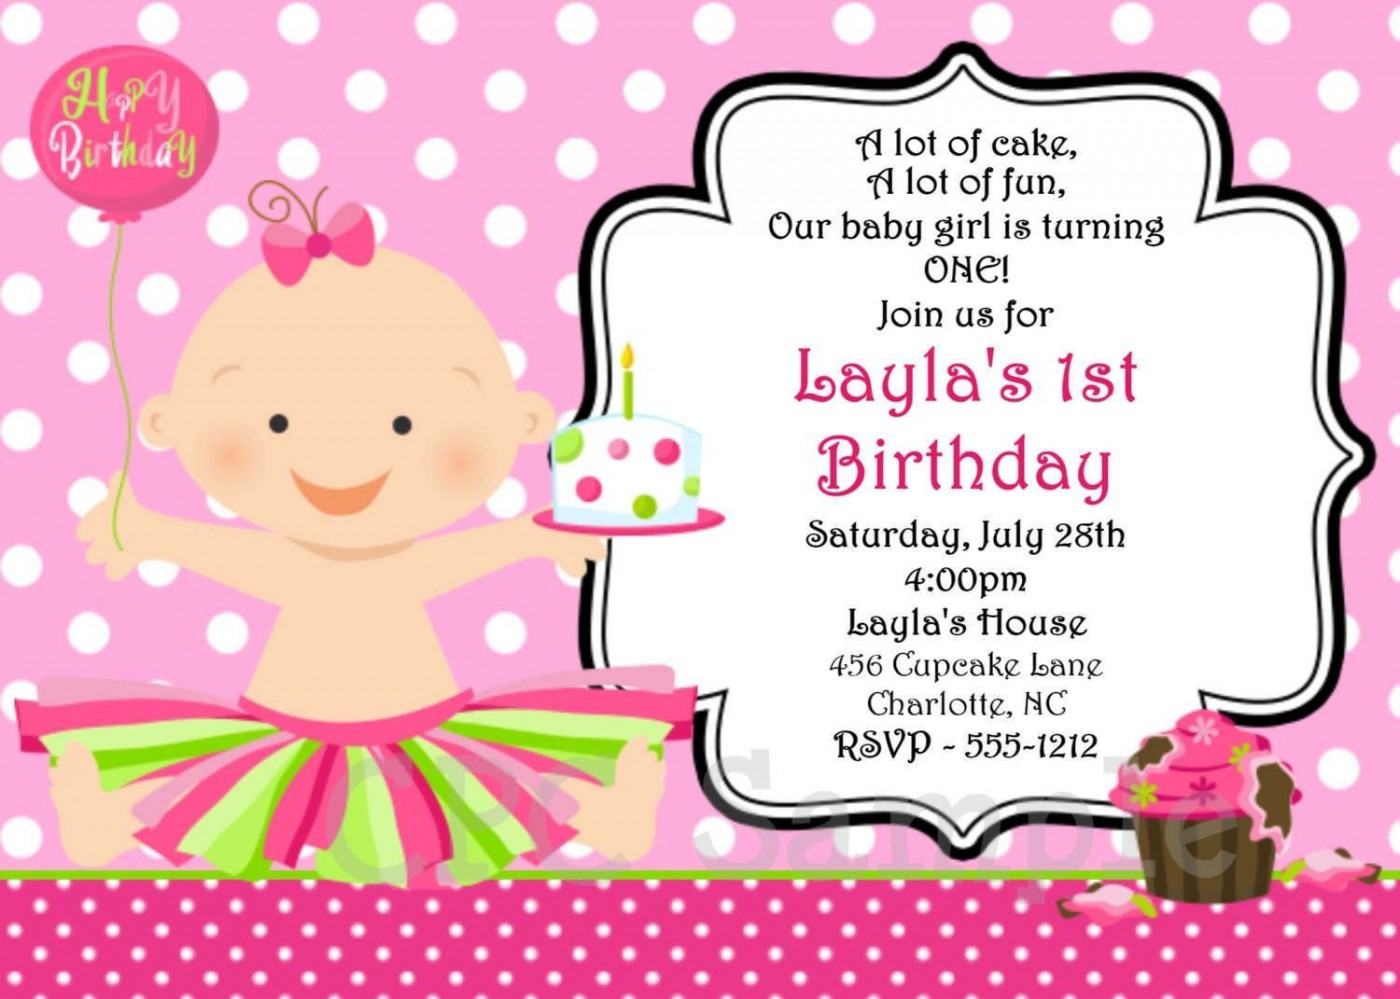 001 Wonderful Free Online Birthday Invitation Card Maker With Photo Concept  1st1400